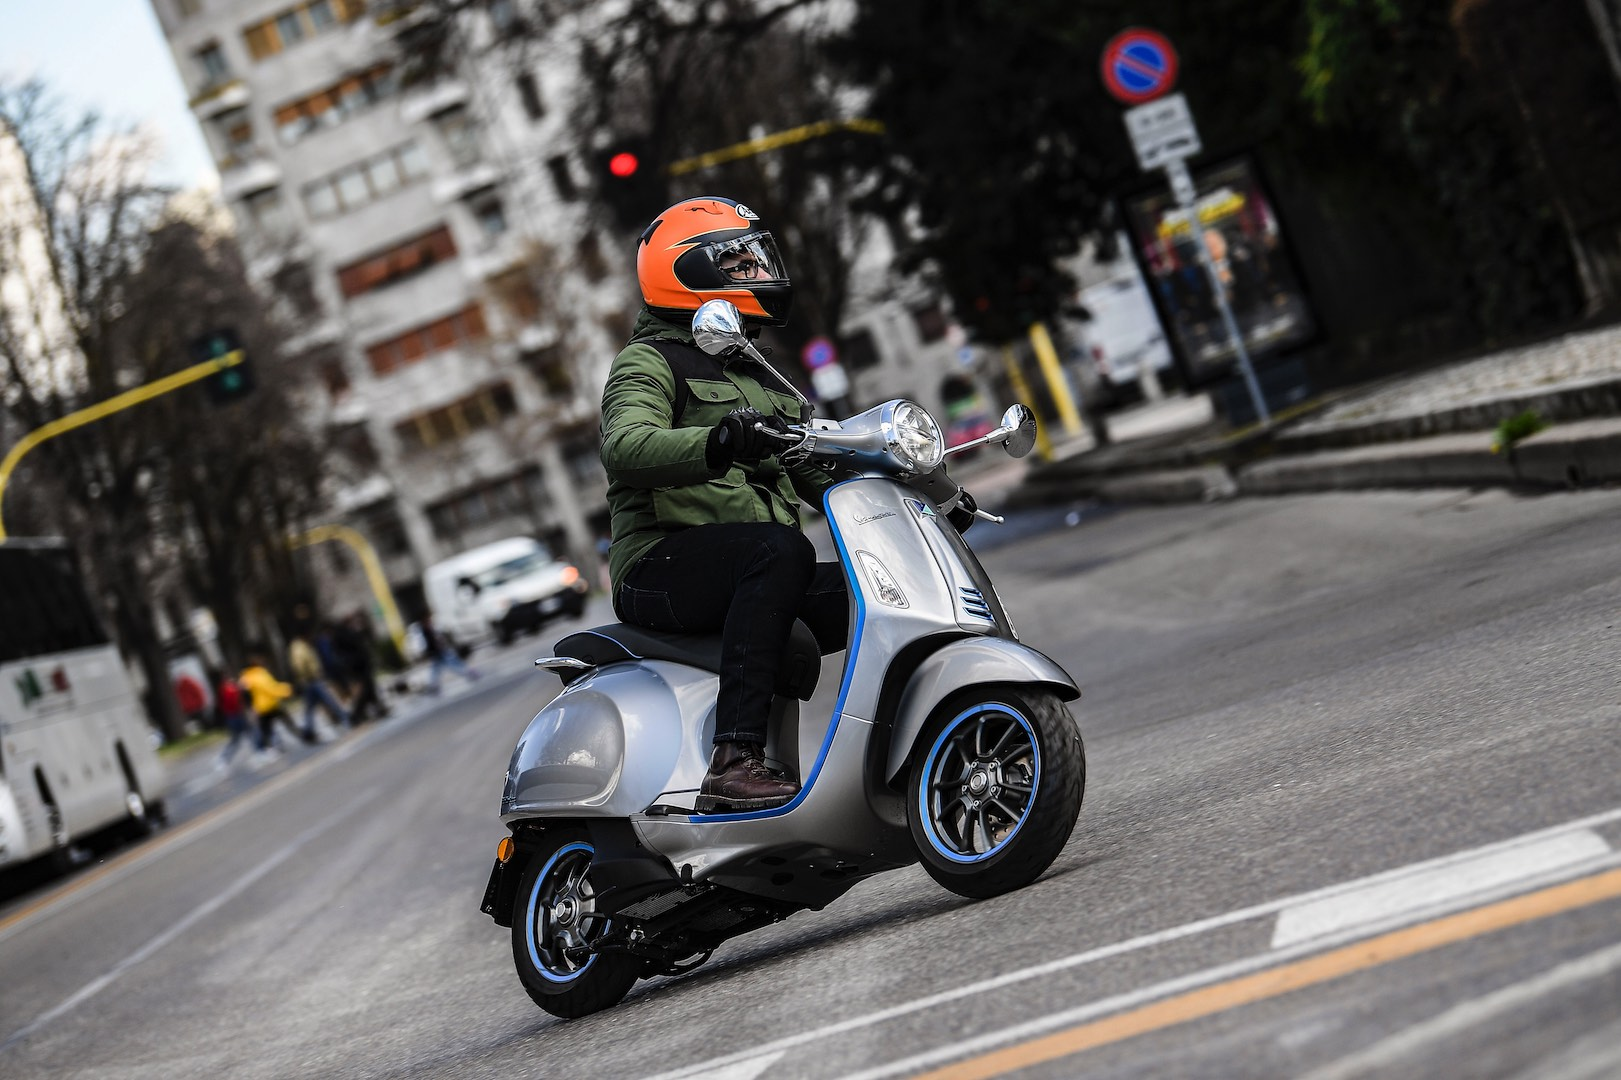 2019 Vespa Elettrica Review - electric scooter